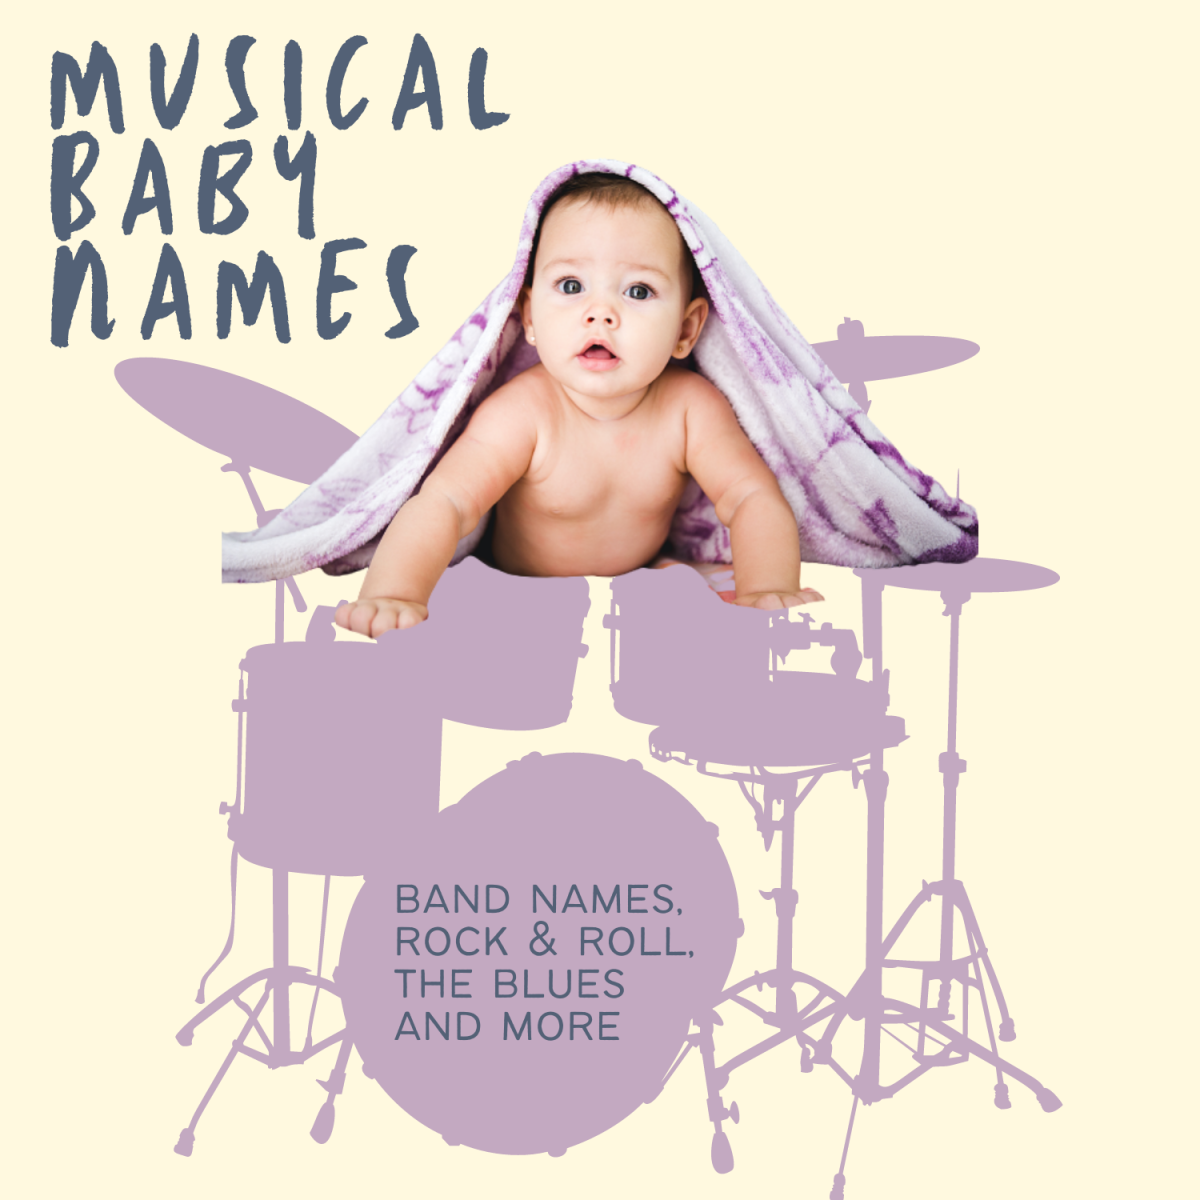 A list of musical, rock, blues, bands, and musical terms that make great baby names.